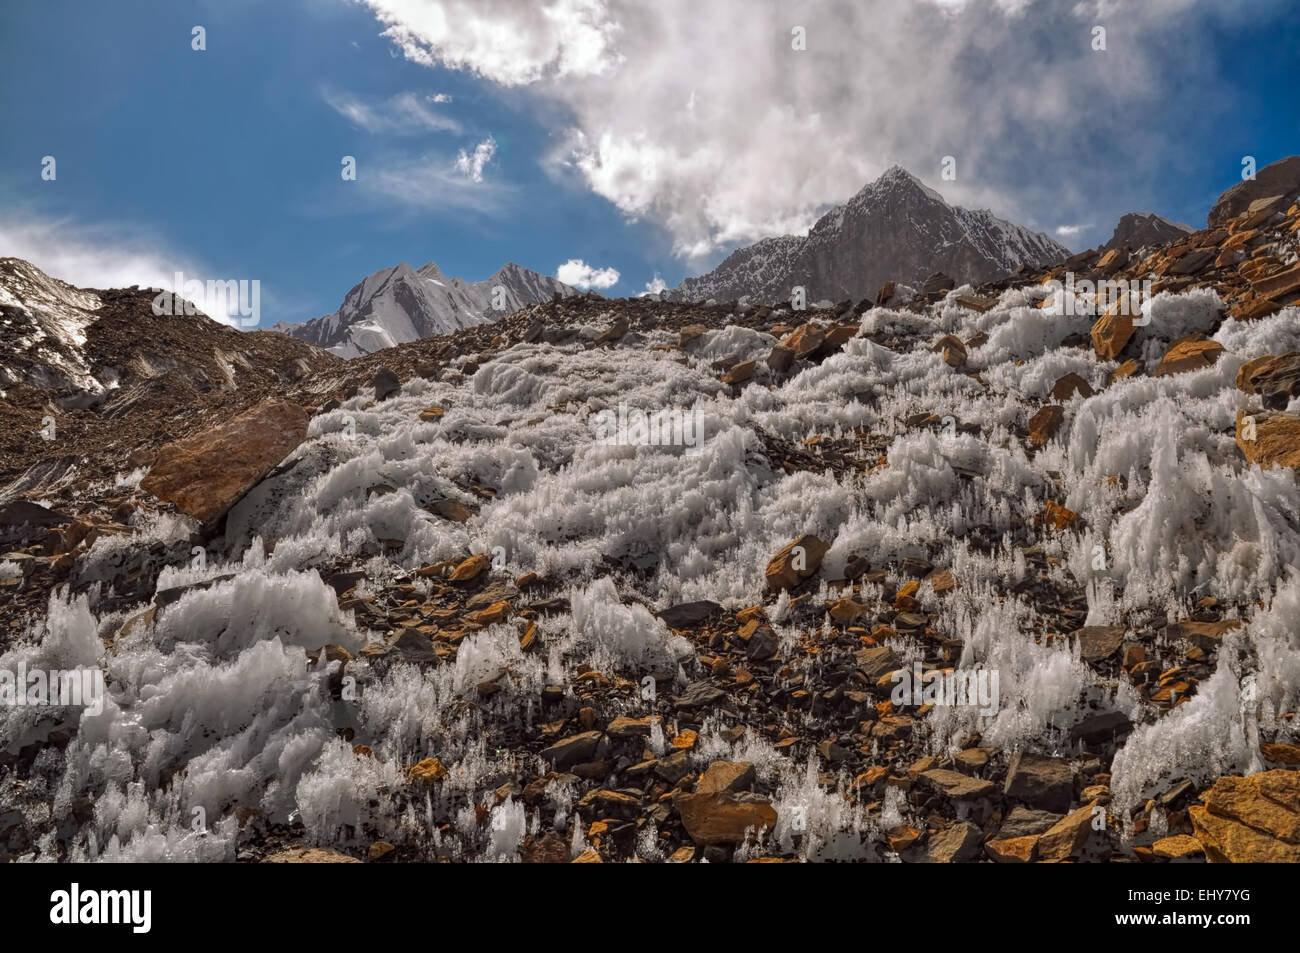 Scenic ice crystals in Pamir mountains in Tajikistan - Stock Image